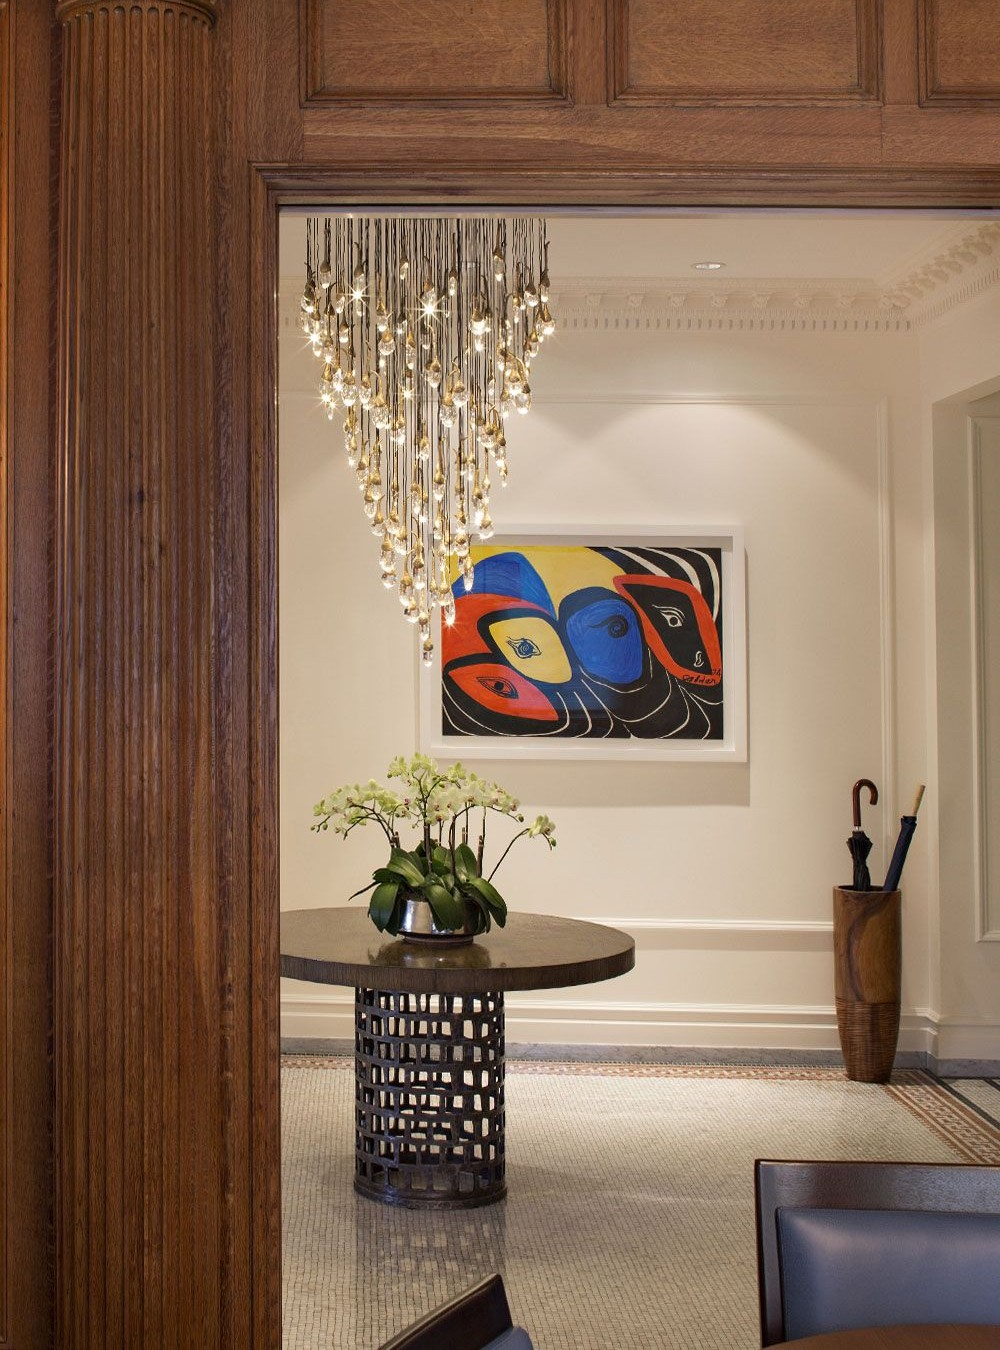 entryway lighting ideas 22 Outrageously Stunning Entryway Lighting Ideas 22 Outrageously Stunning Entryway Lighting Ideas 1 4